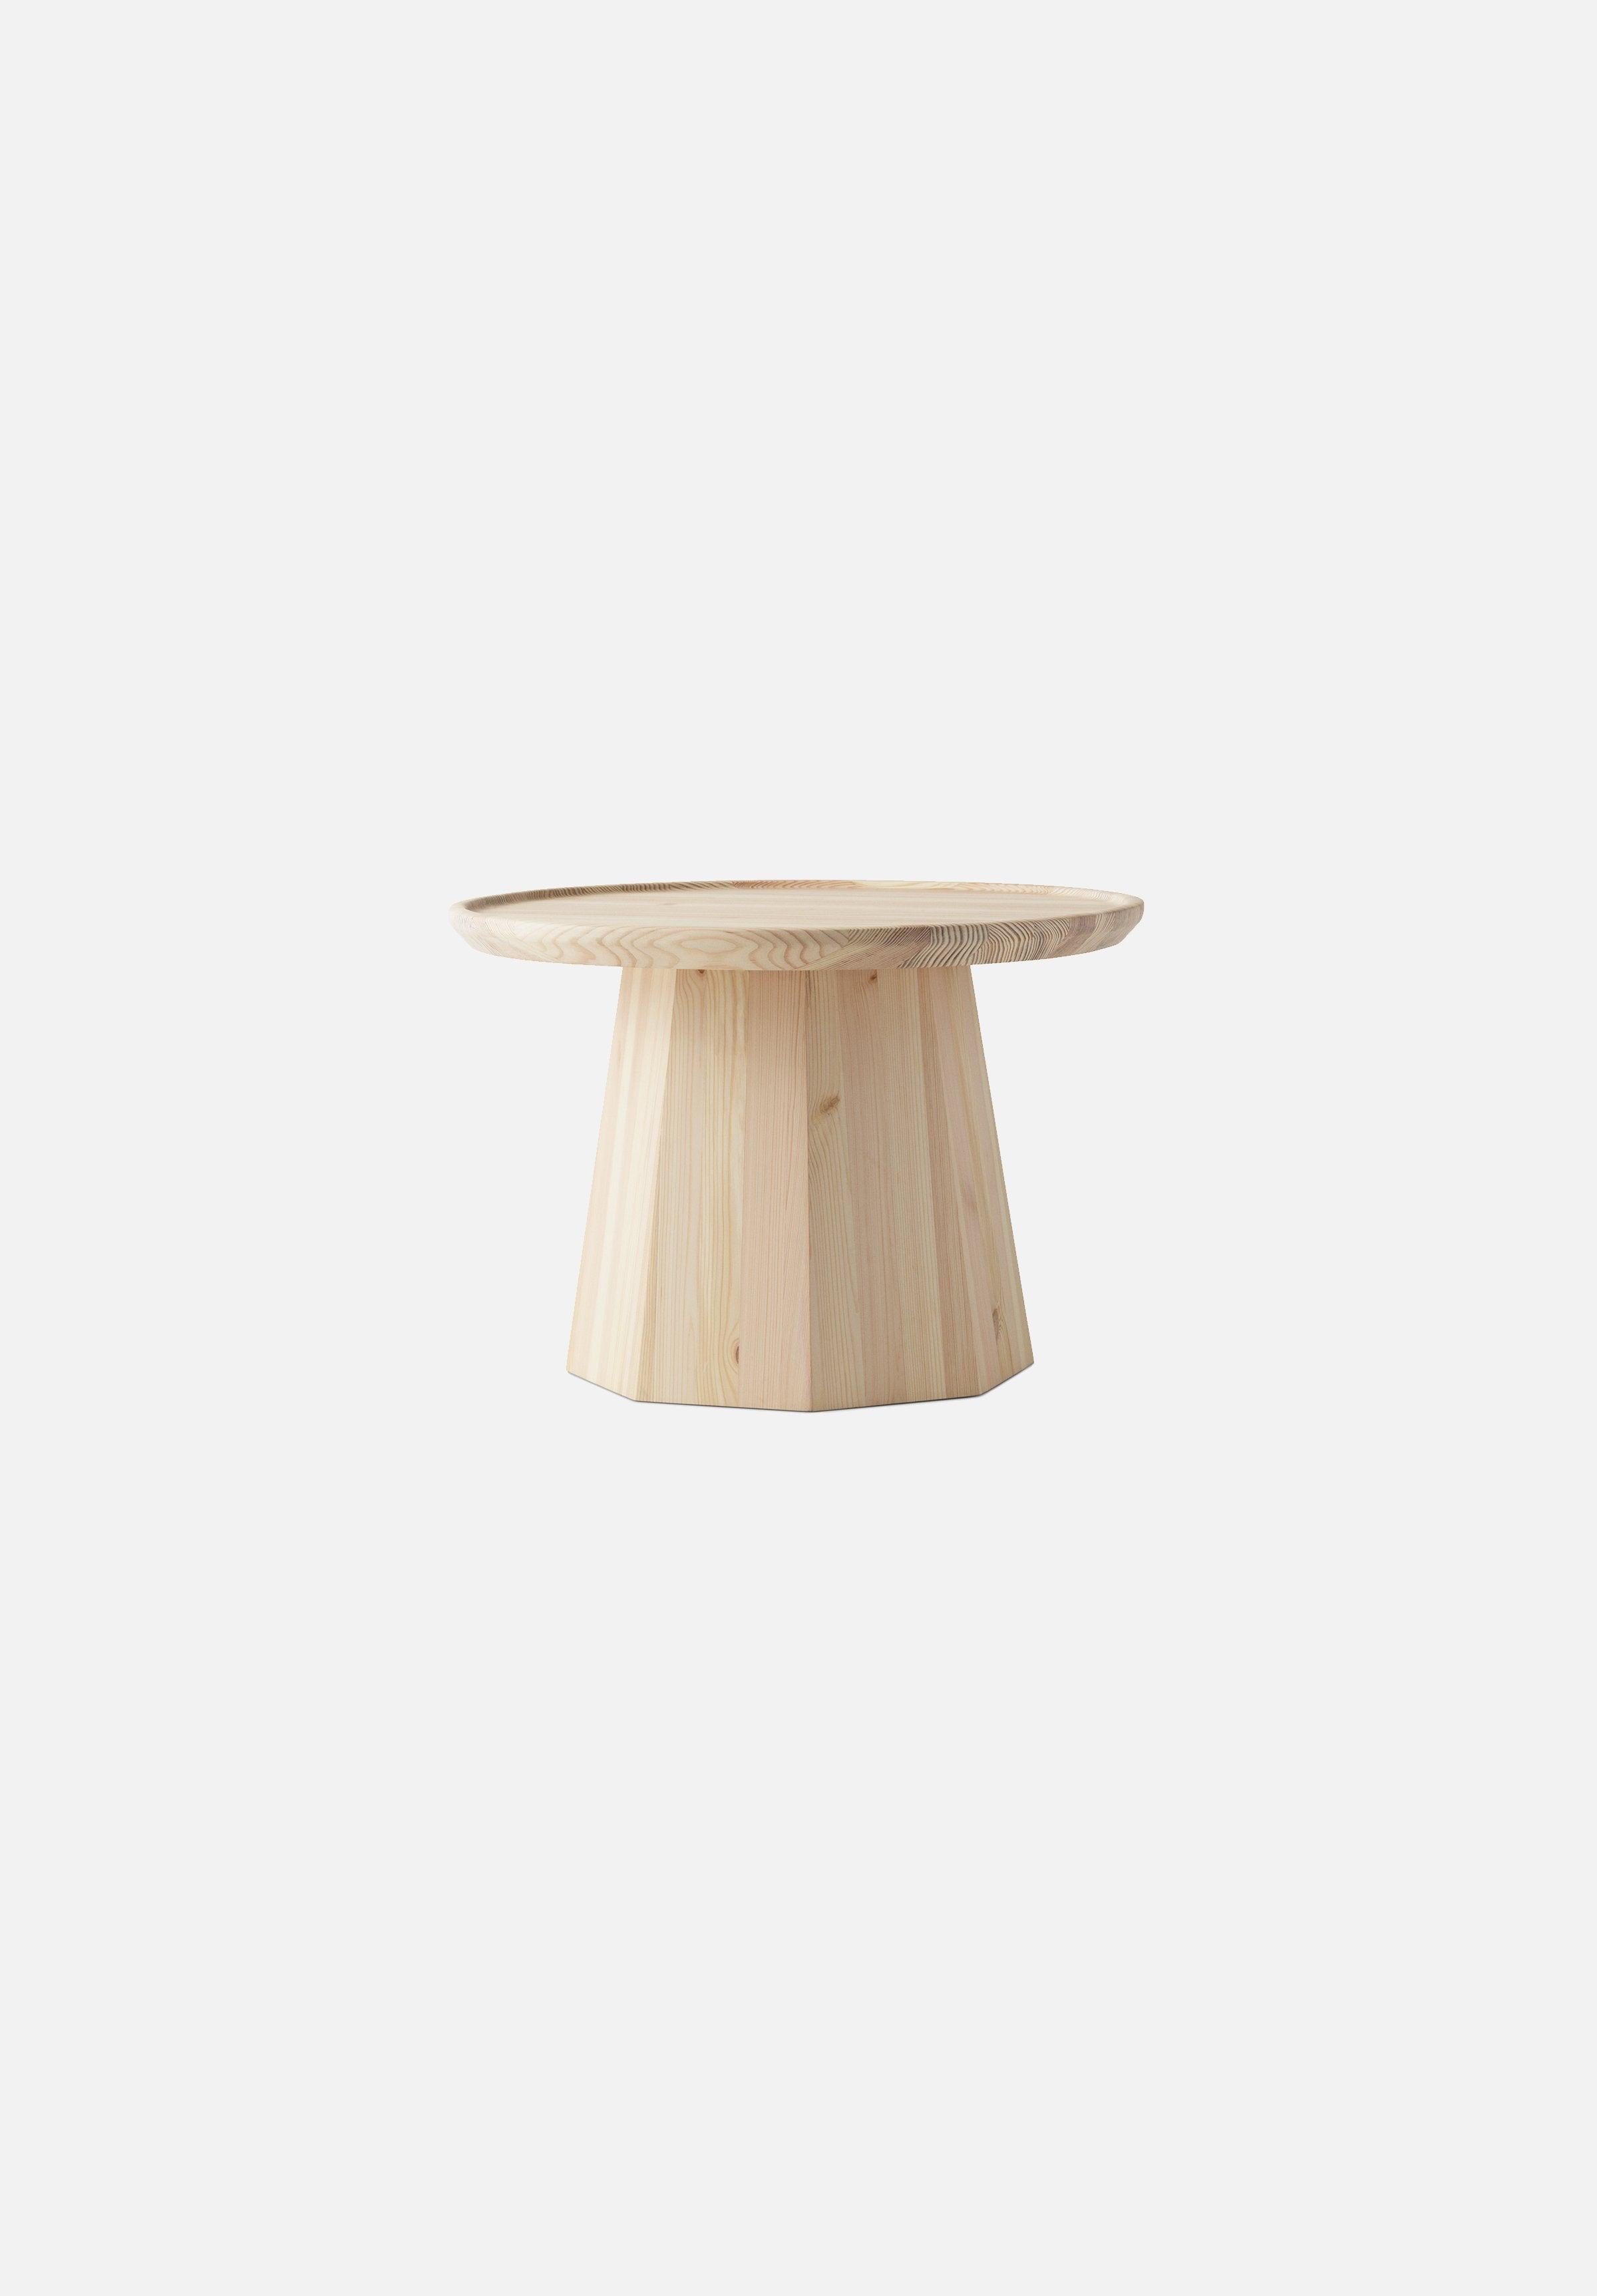 Pine Table-Simon Legald-Normann Copenhagen-natural-Large-Average-canada-design-store-danish-denmark-furniture-interior